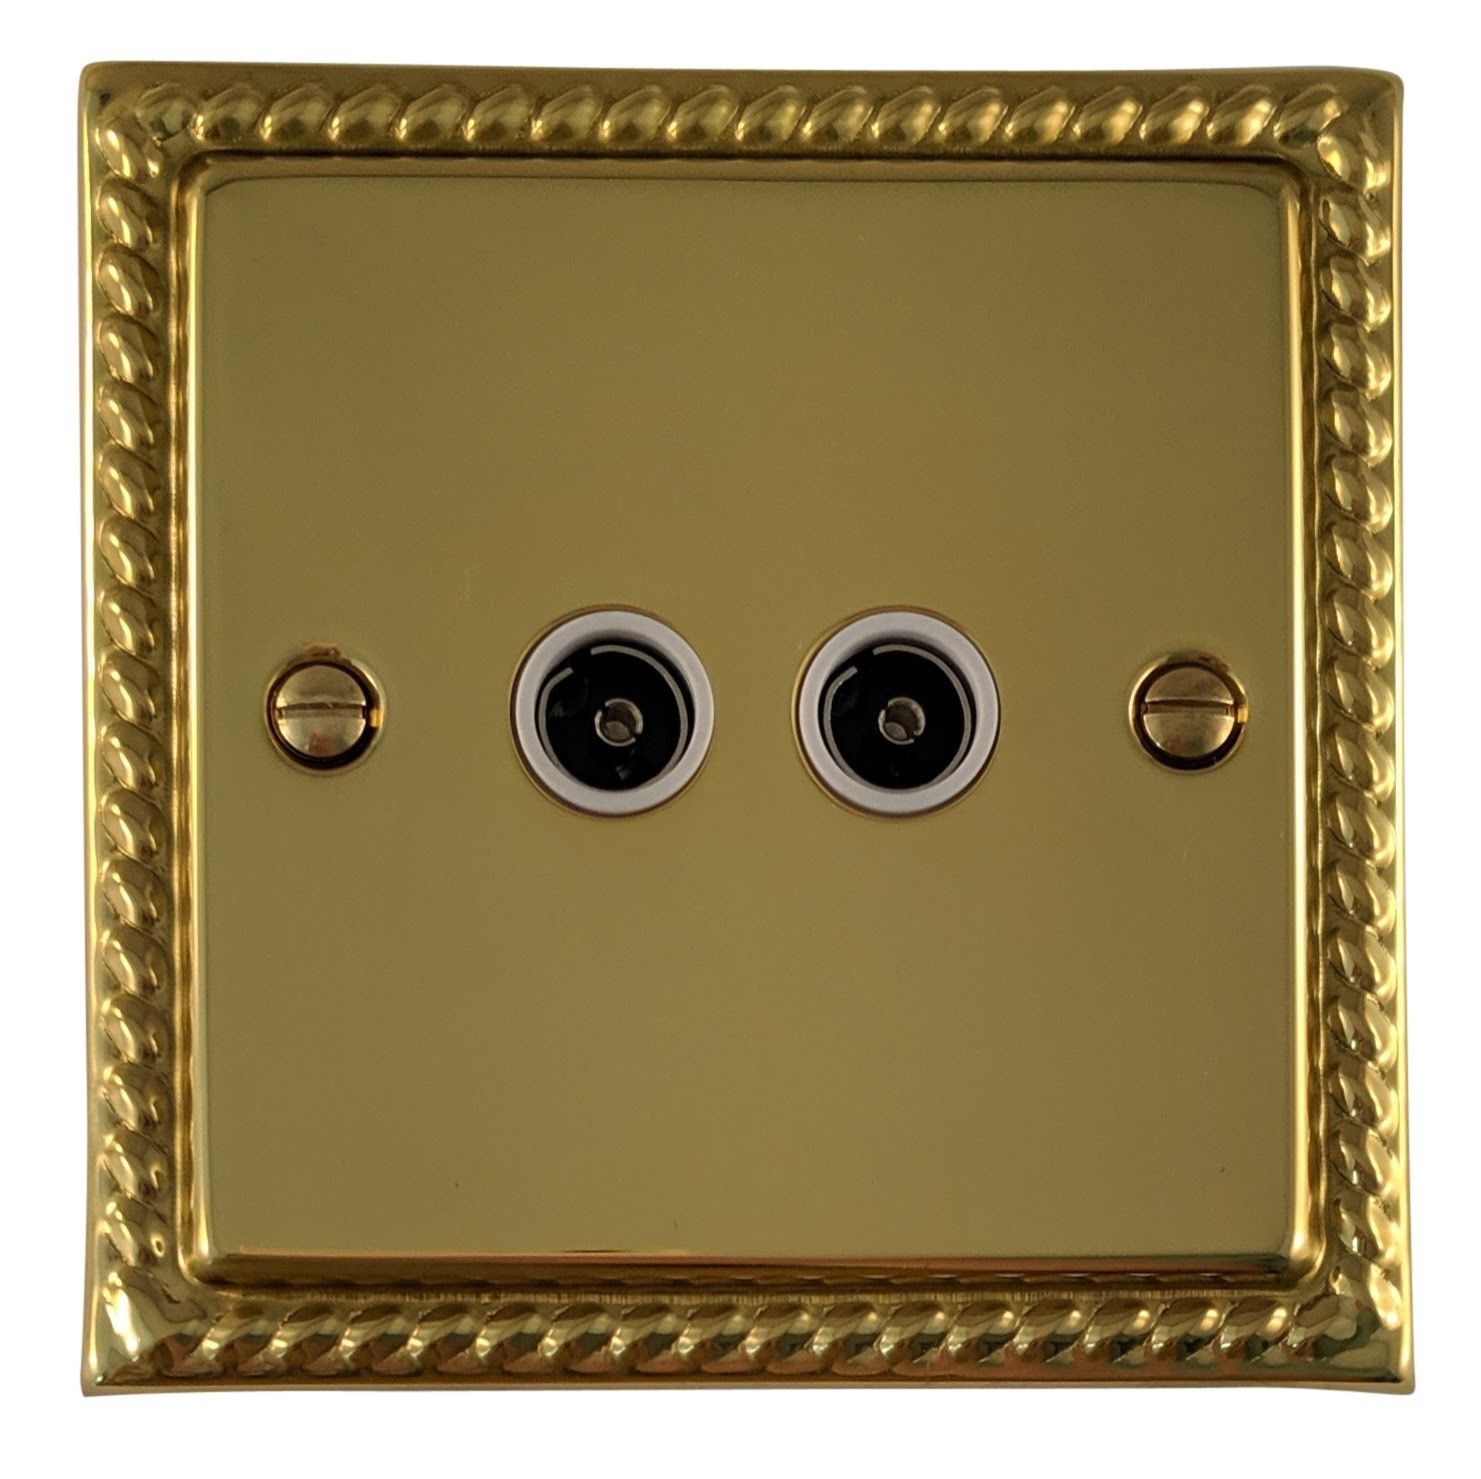 G&H MB36W Monarch Roped Polished Brass 2 Gang TV Coax Socket Point